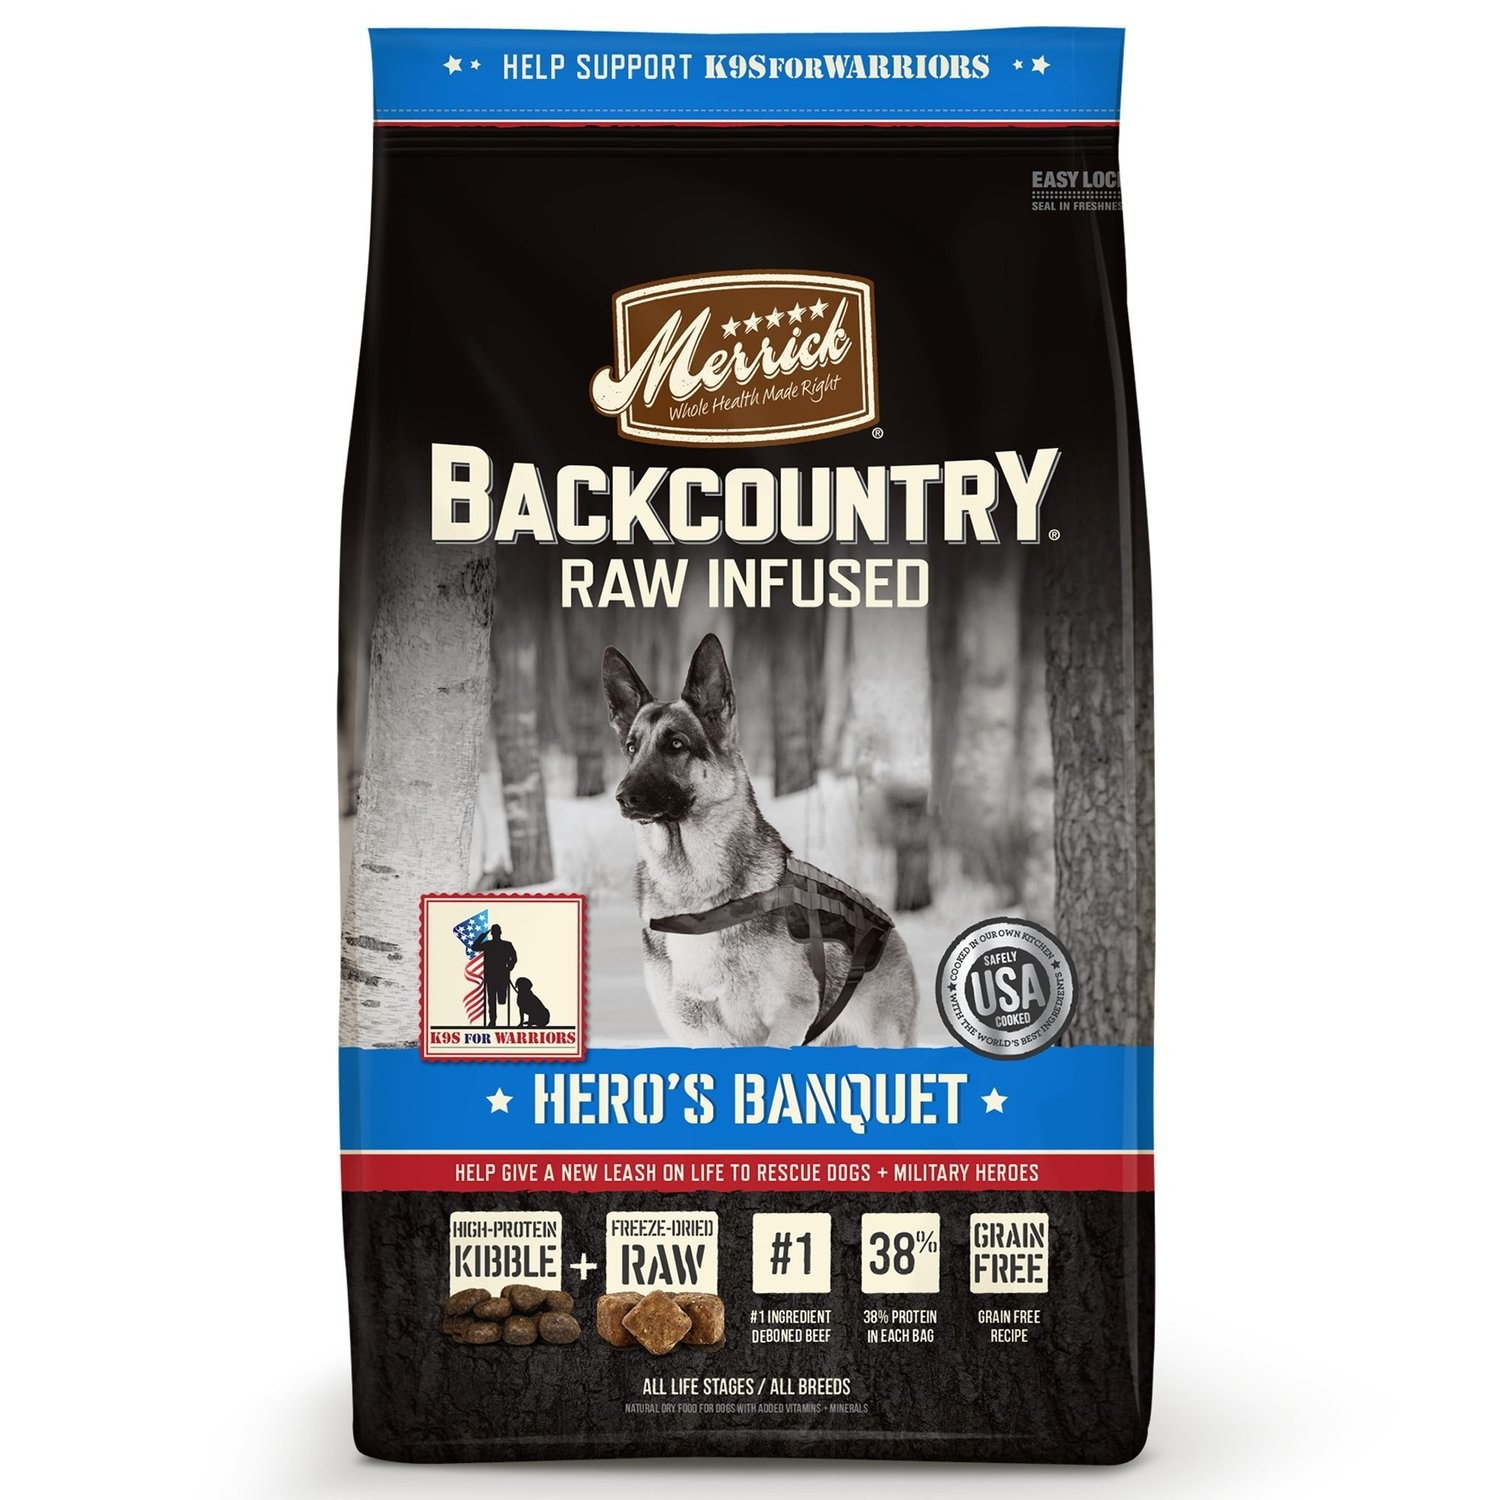 Merrick Backcountry Grain Free Hero's Banquet Dry Dog Food, 4 lbs (2/19) (A.K1)